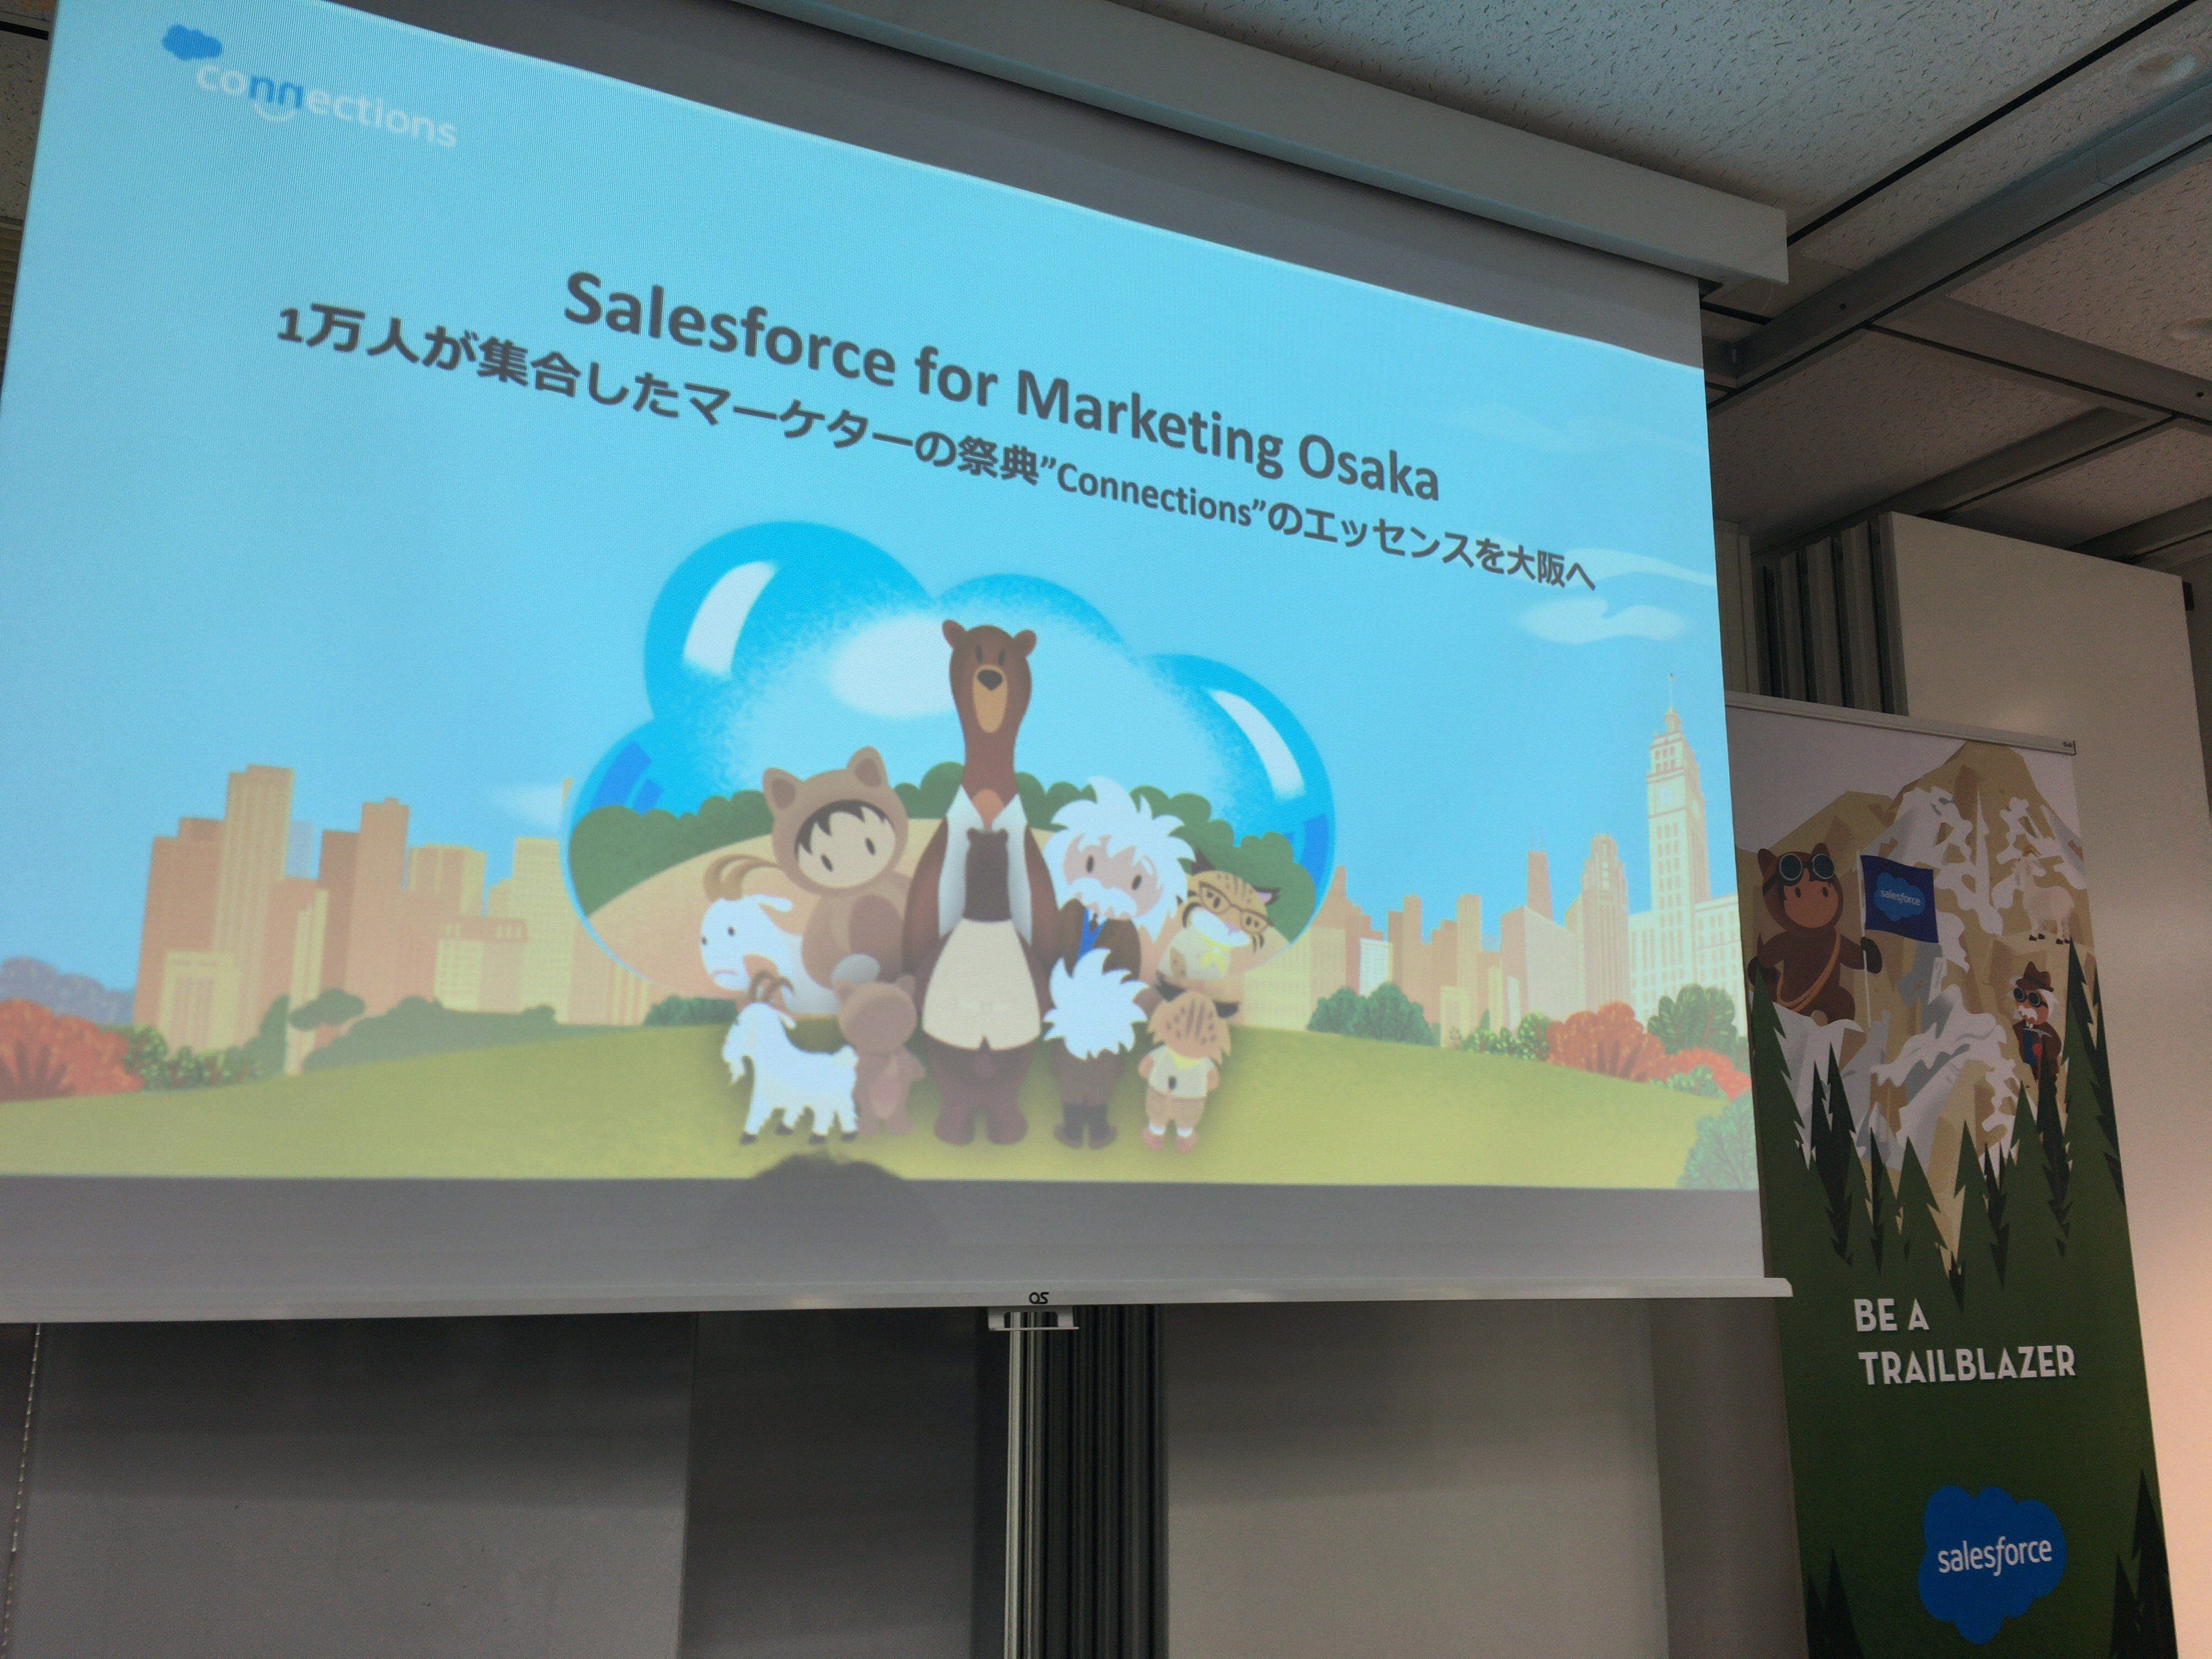 Connectionsの最新エッセンスを大阪でGETしよう!「Salesforce for Marketing Osaka」